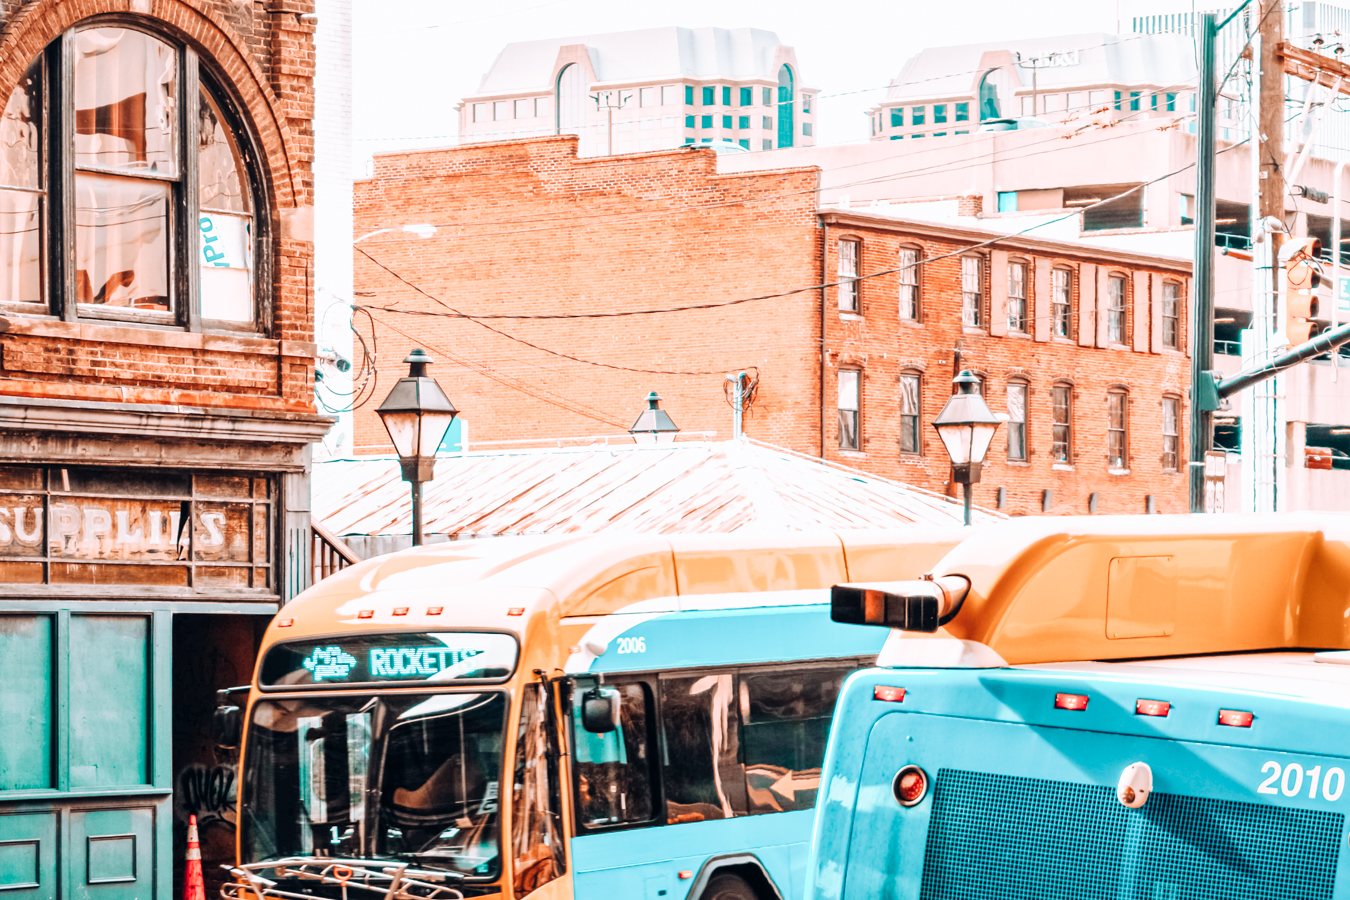 Blue buses and buildings